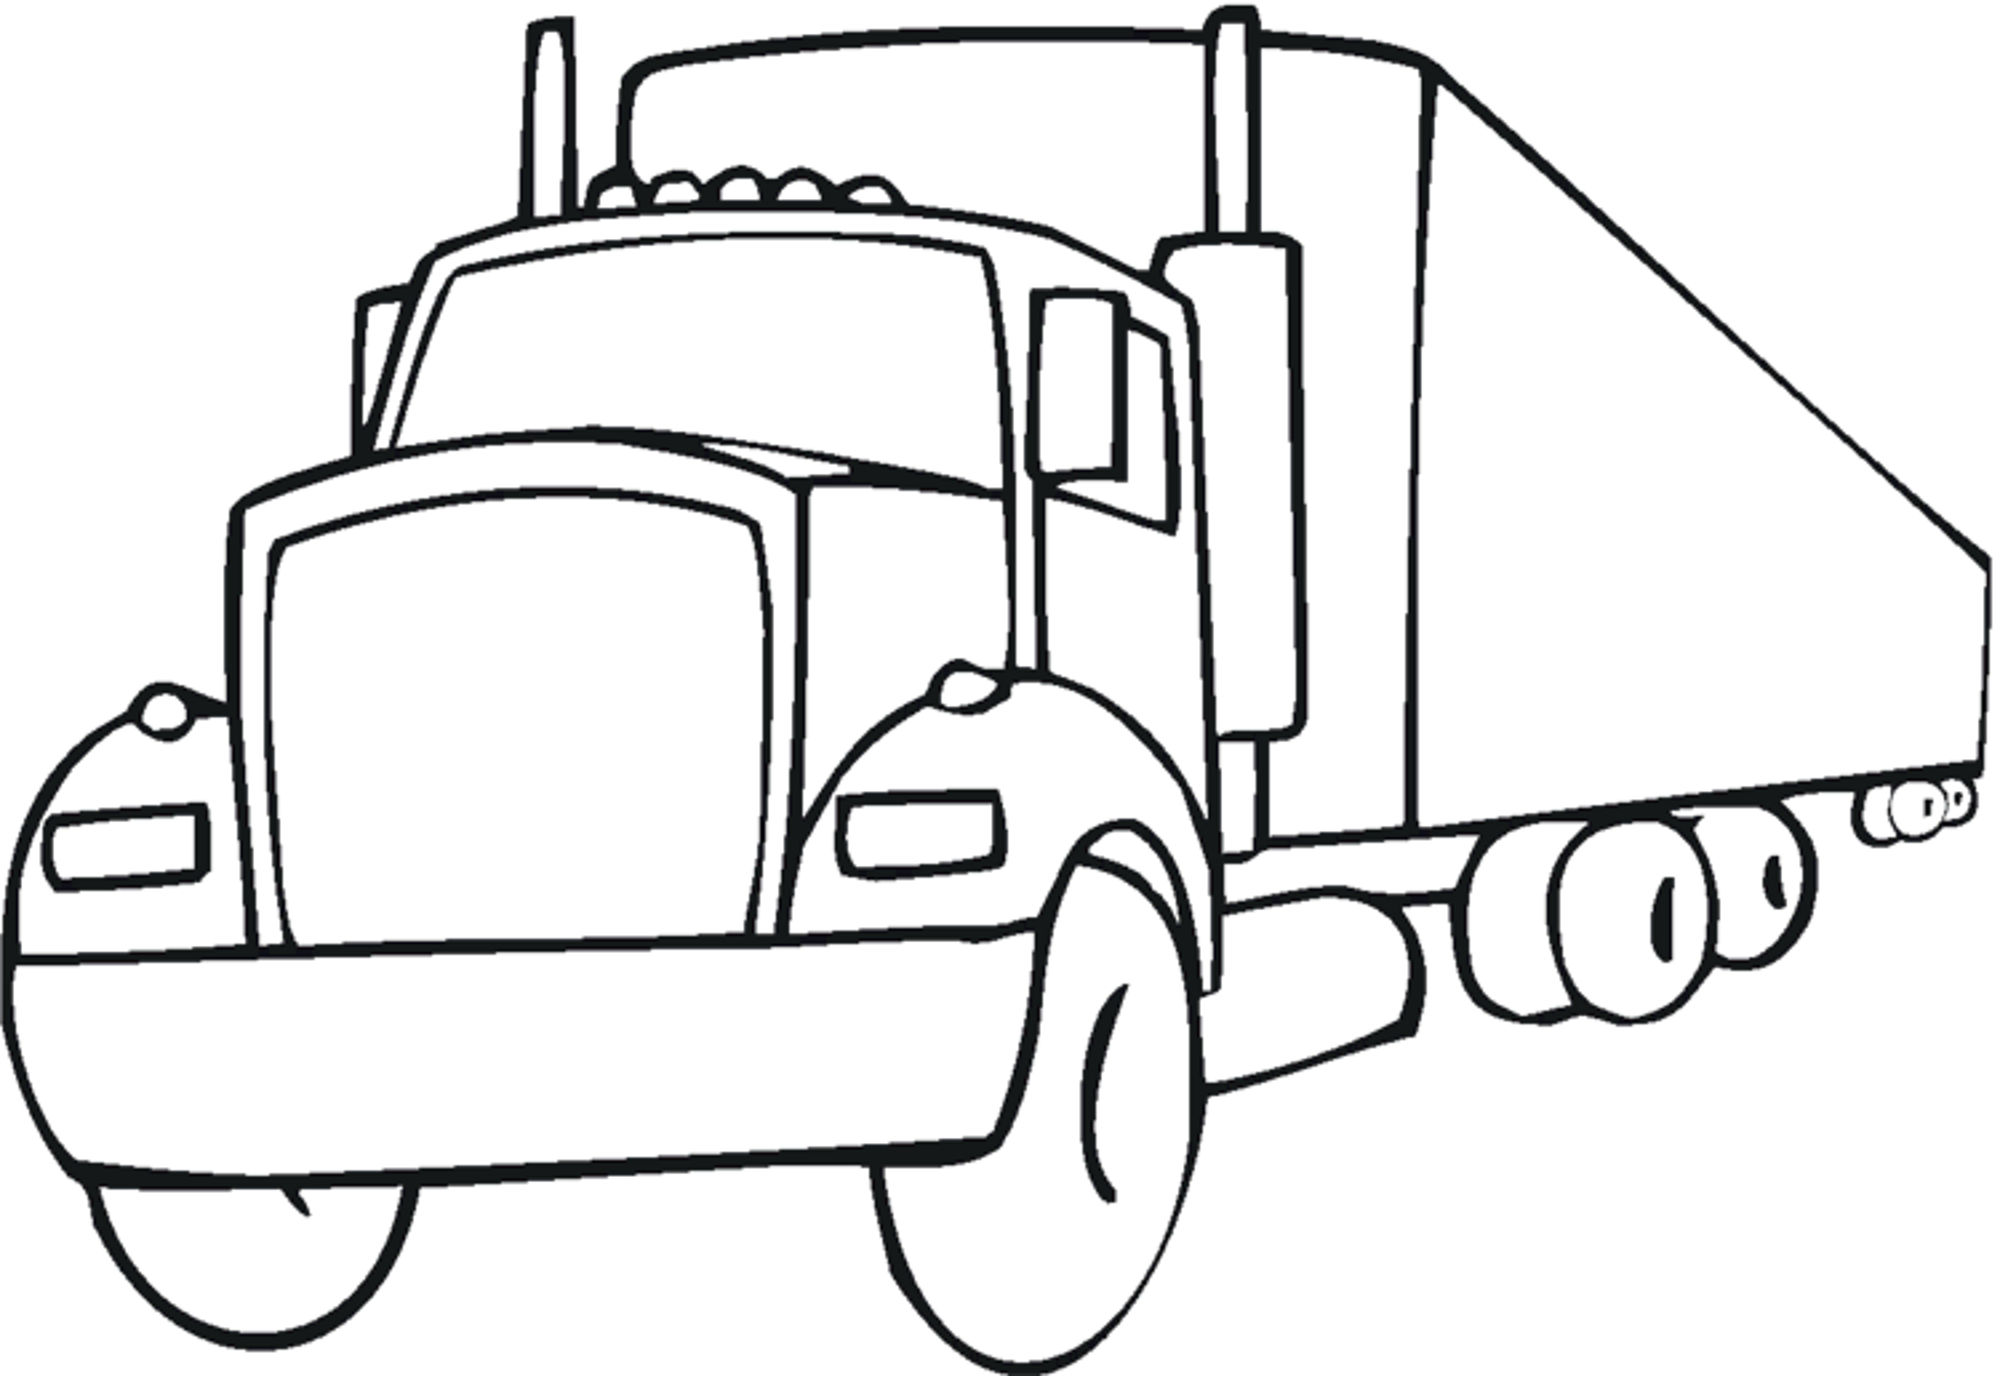 2000x1376 Coloring Pages Kids Easy Fire Truck Printable Boy